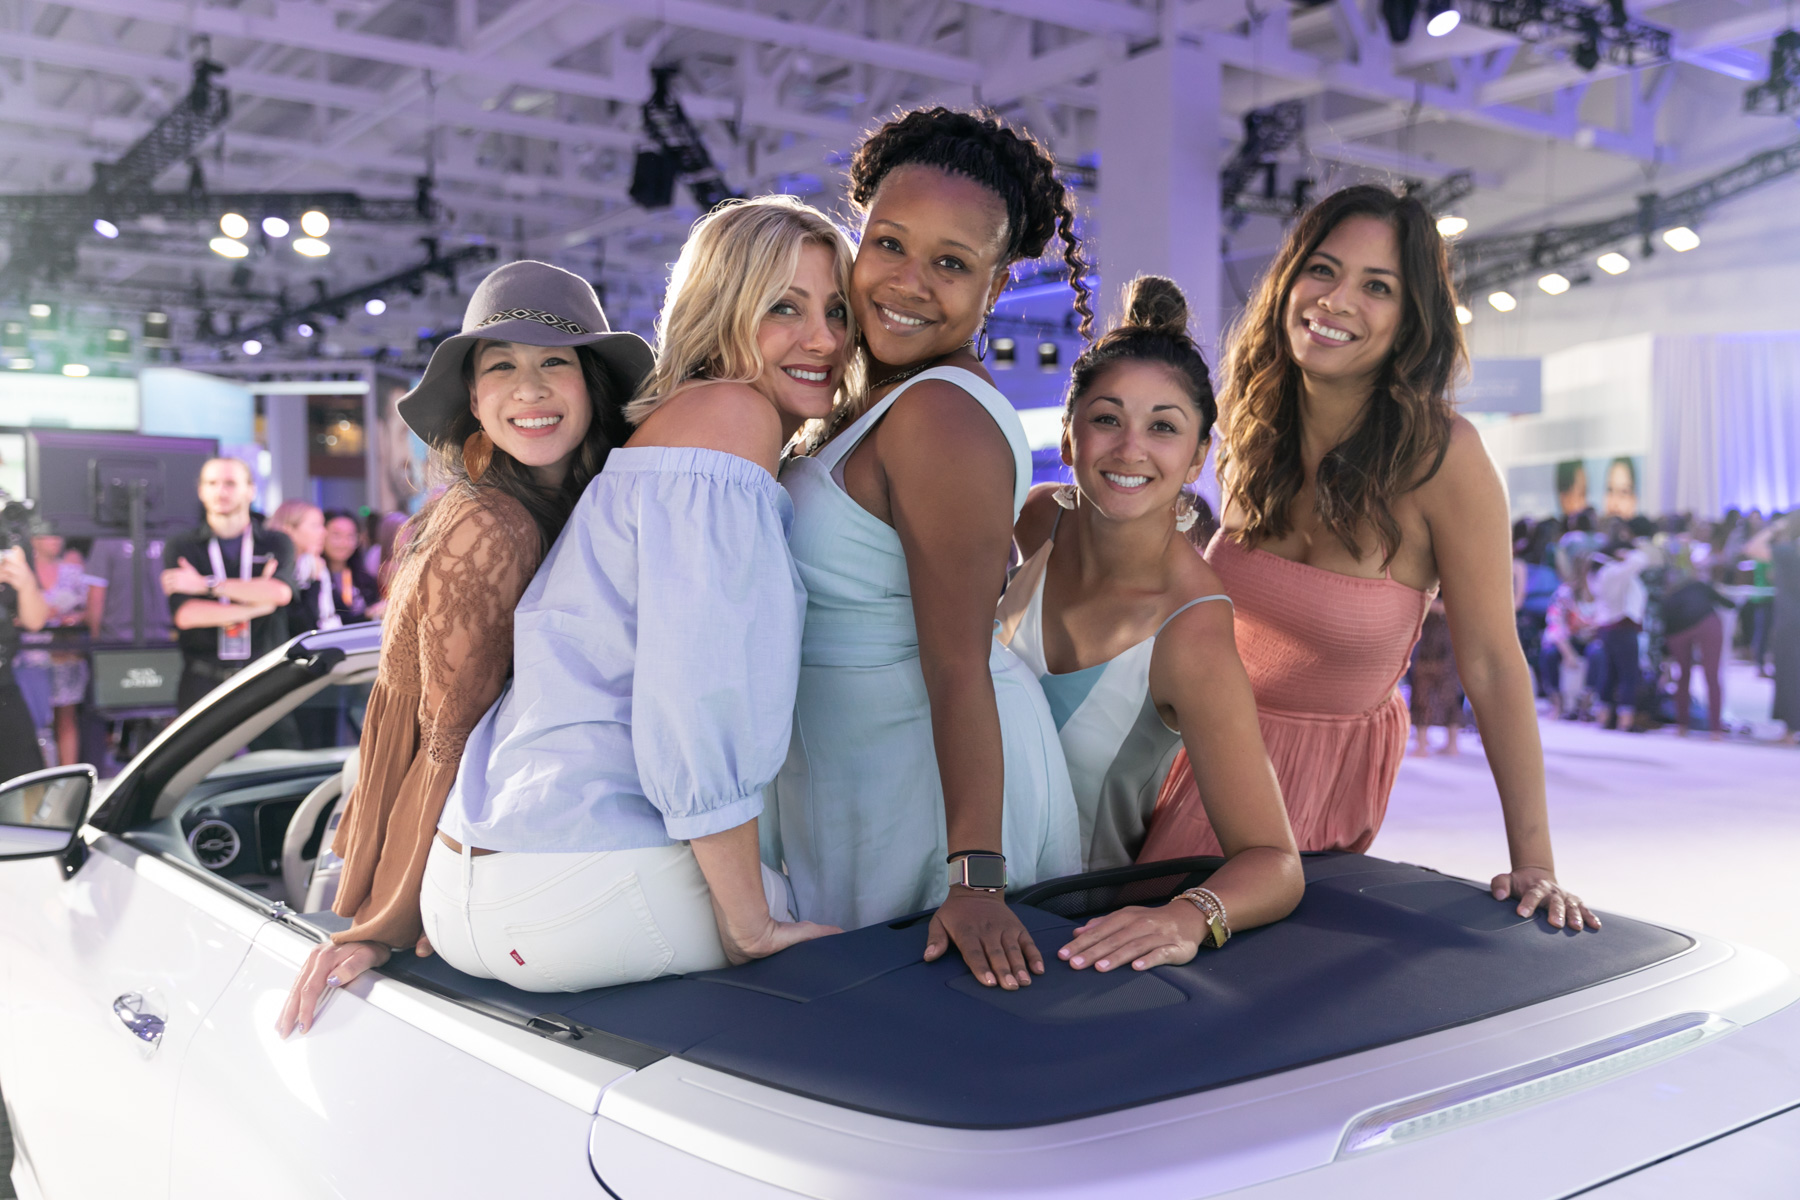 Five young women dressed in pastels sitting on the back of a convertible on a trade show floor captured by Margo Moritz